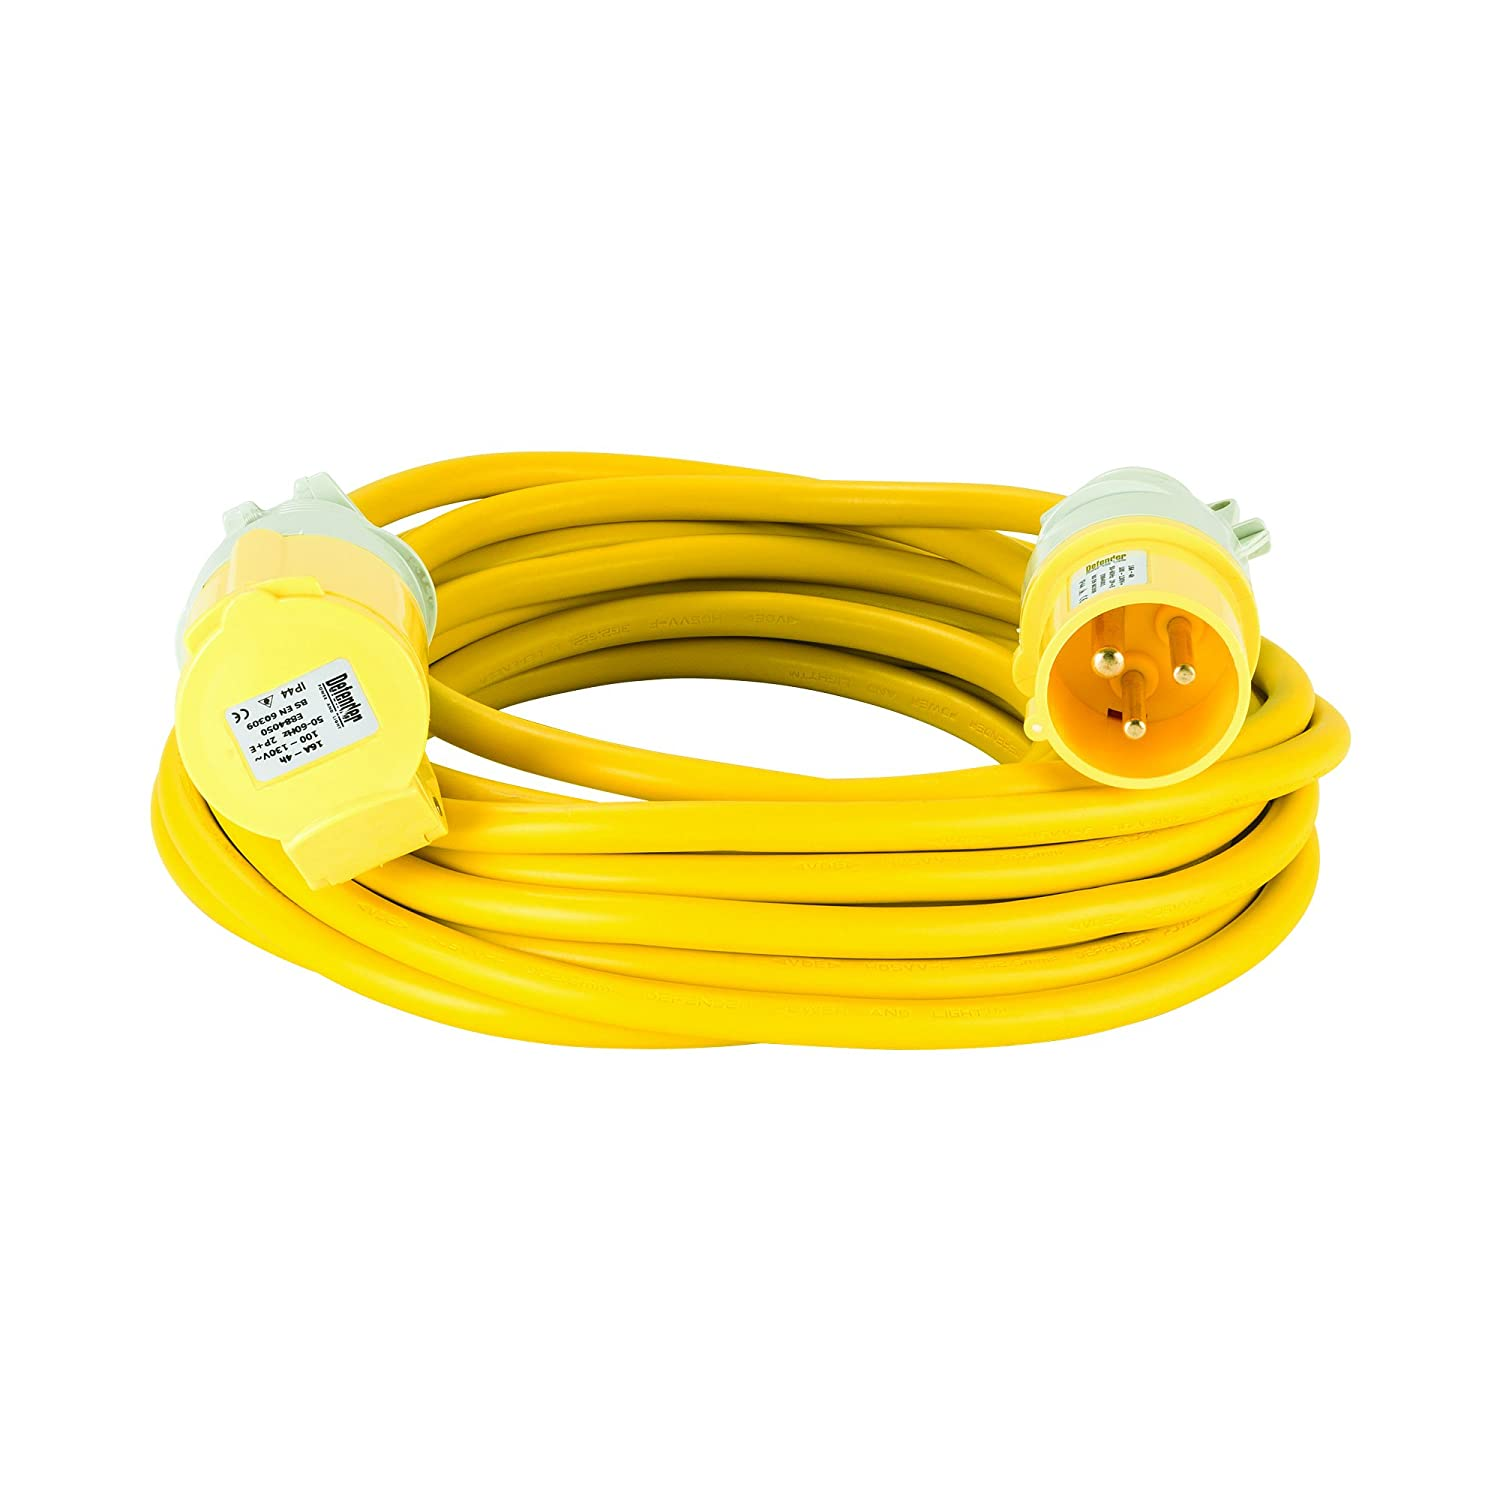 Defender E85123 10M Extension Lead-16A 2.5mm Cable 110V, 110 V, Yellow